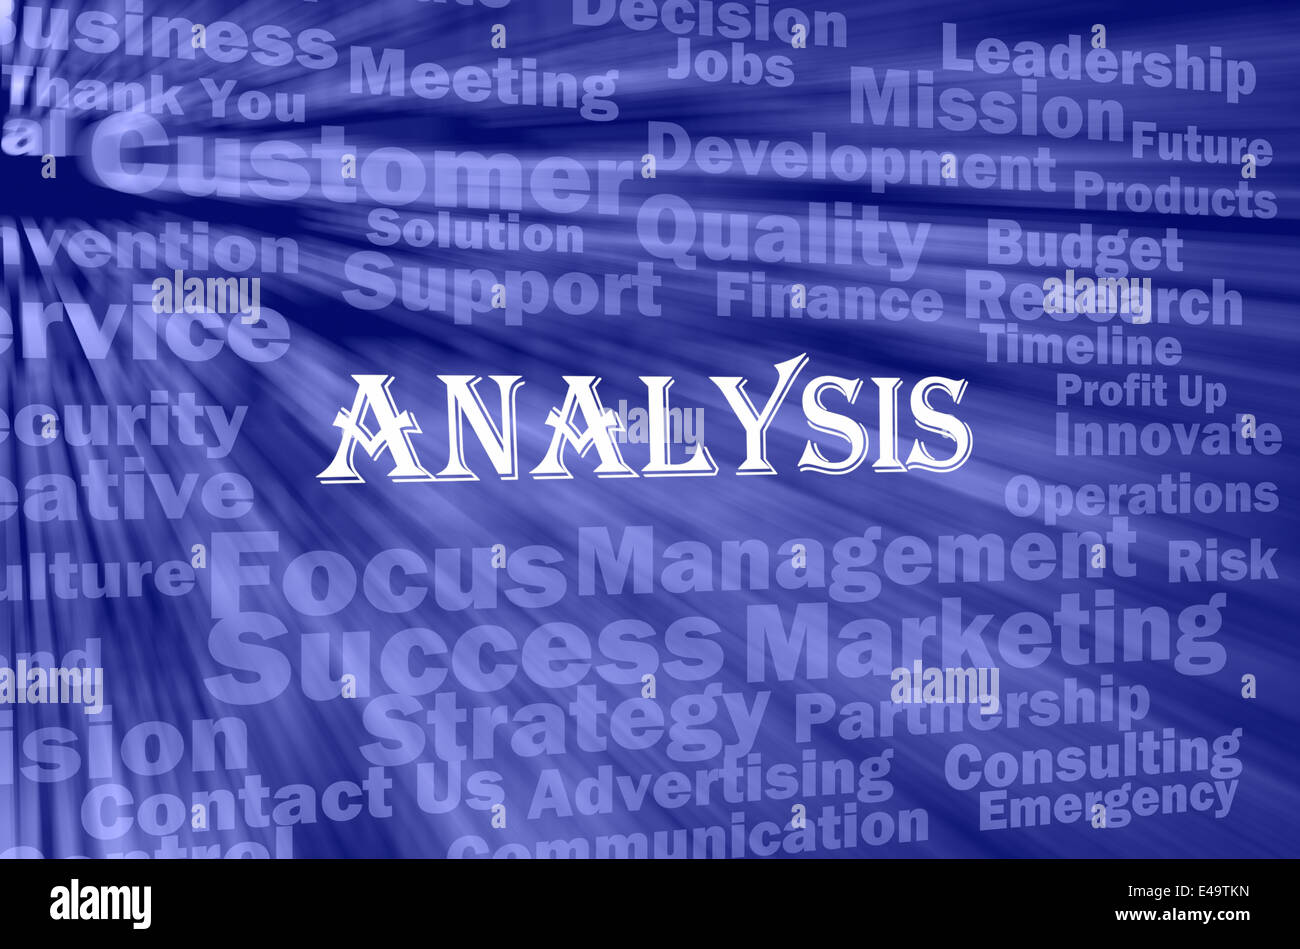 Analysis concept with related words - Stock Image